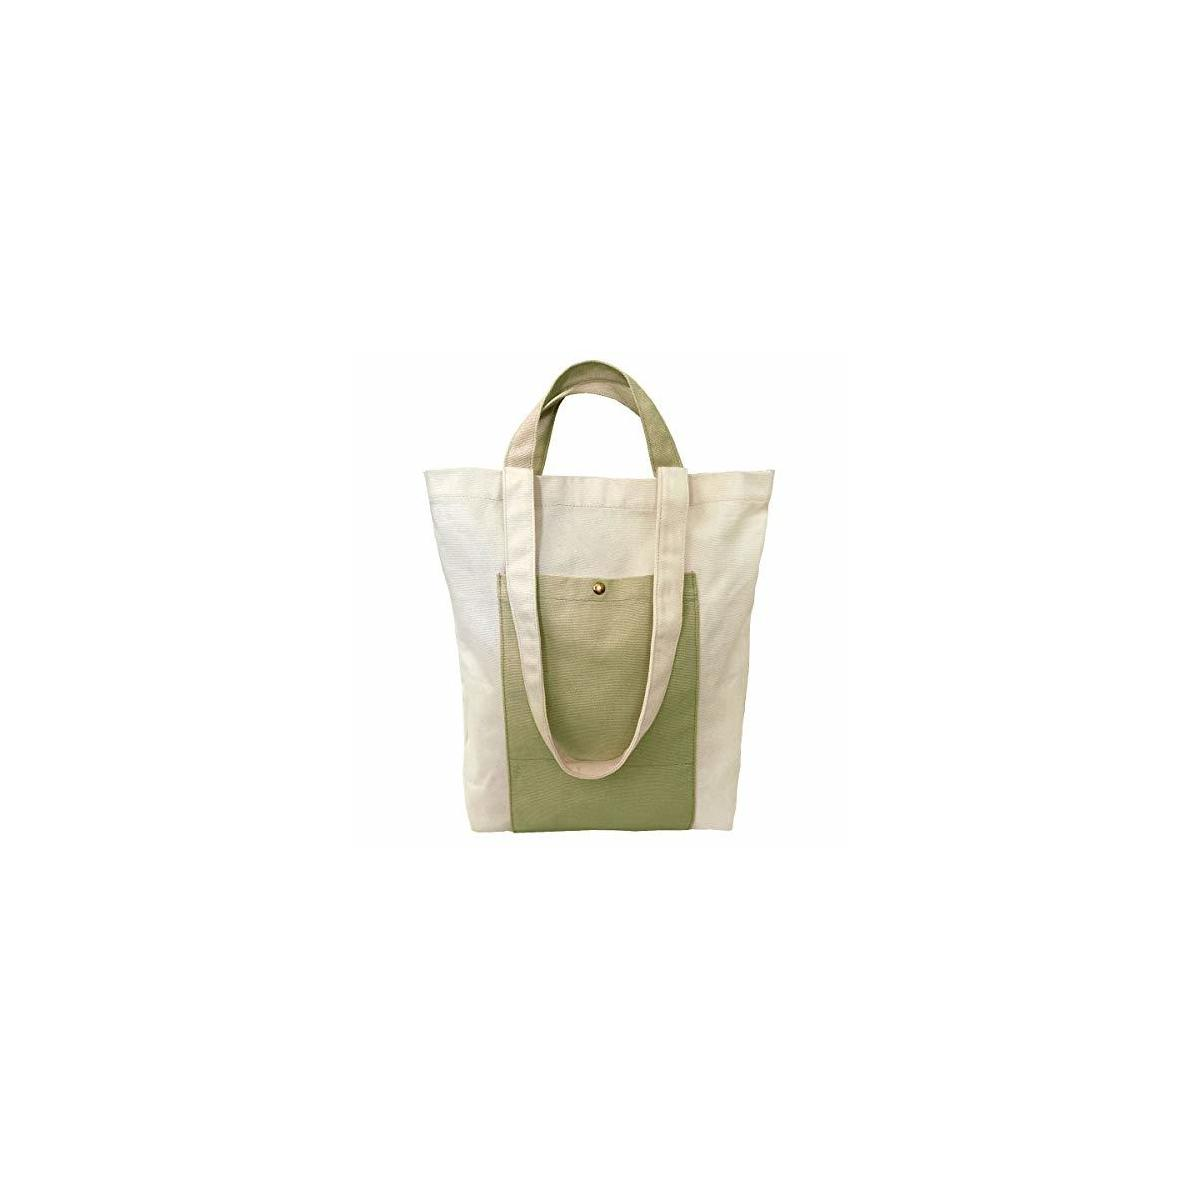 KELAMY Women Canvas Tote Shoulder Bag with Handles for Casual, Grocery Shopping, School & Work (Sage Green)